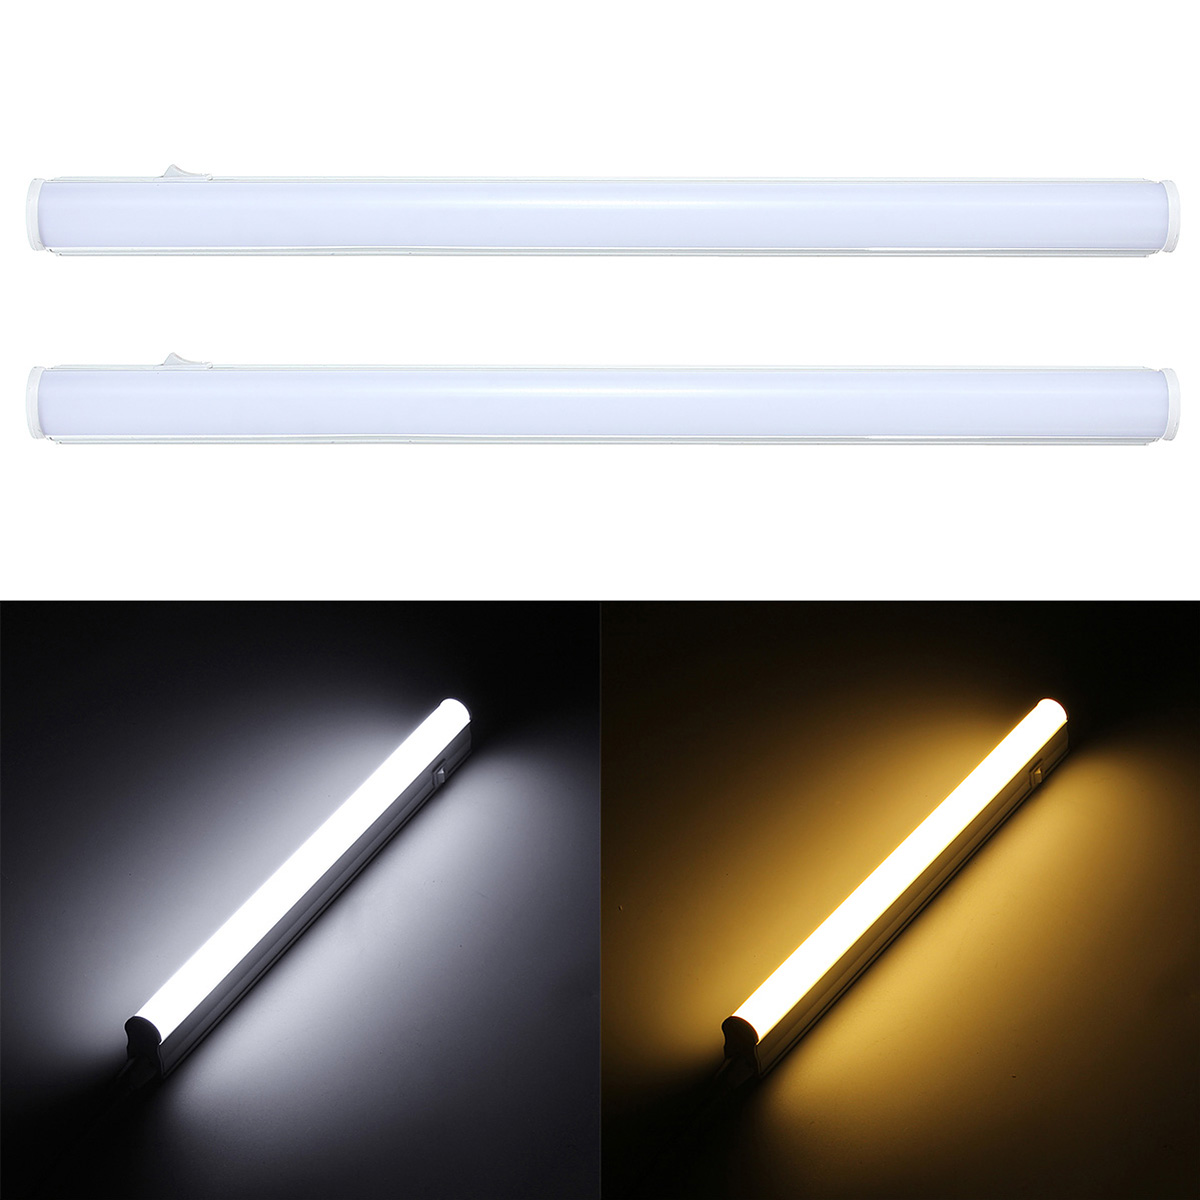 1pc/lot LED Bulbs Tubes Integrated Tube Light T5 30cm 5W LED tubes AC85-265V SMD2835 Lighting 440lm LED Fluorescent tubes 2pcs set t5 led light tube ac85 265v 2 5w wall lamps 1ft led t5 tube fluorescent lamp lights connect cord power switch cable